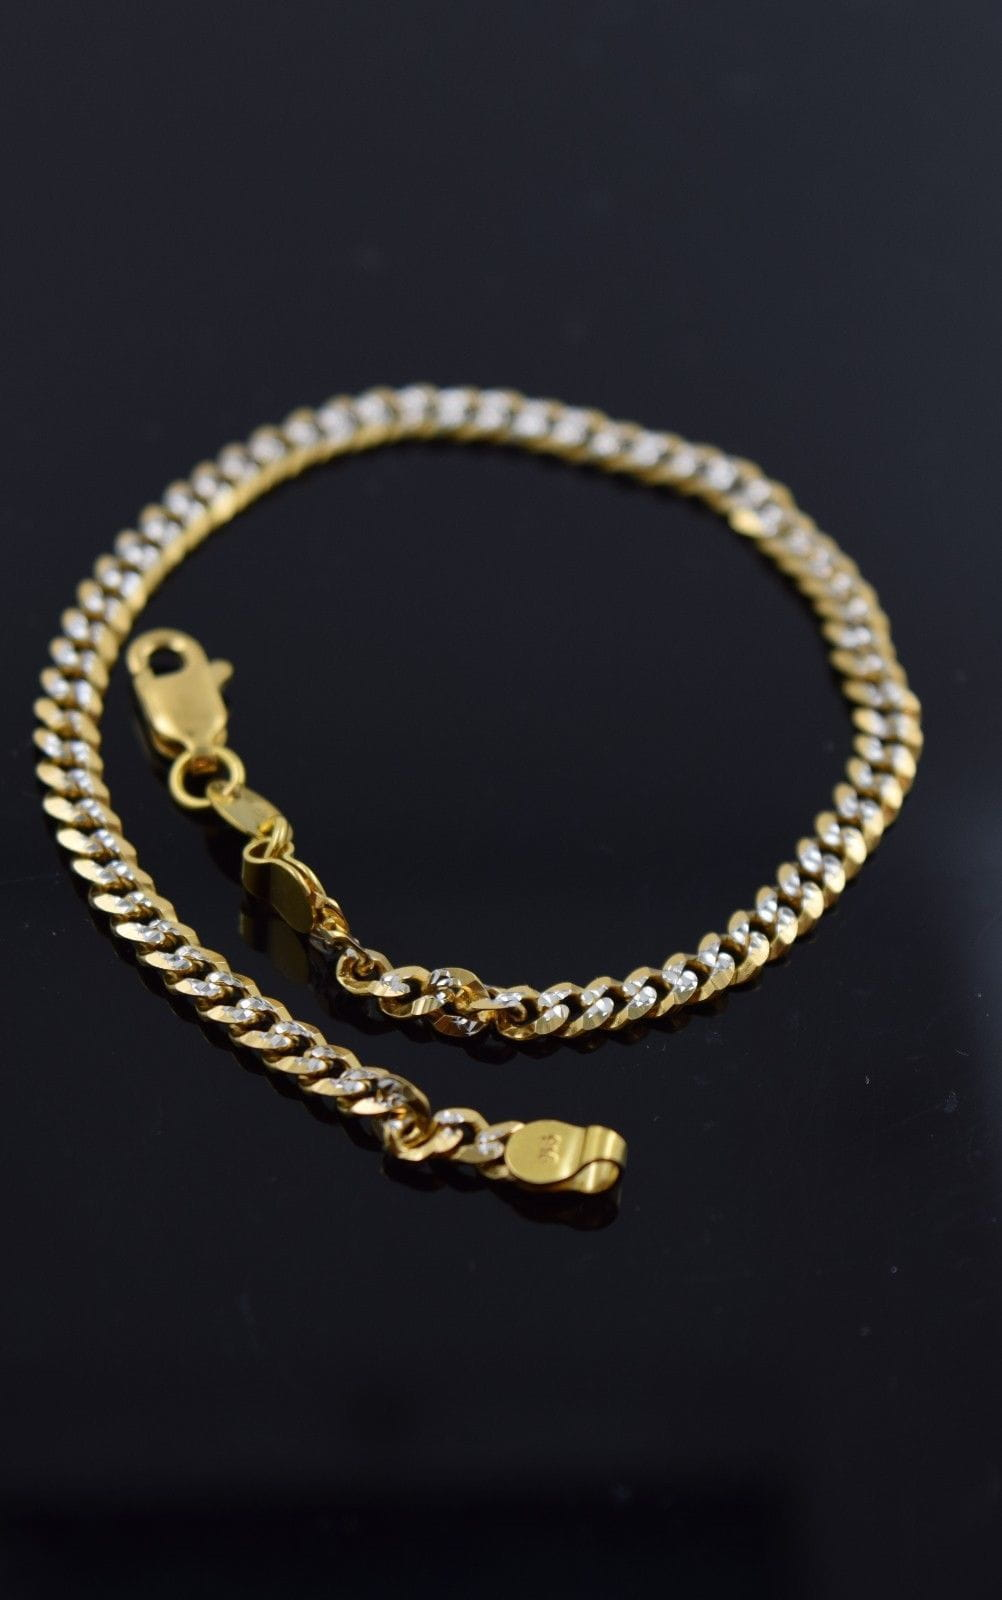 22k 22ct Solid Gold ELEGANT Bracelet with box length 7.5 Inch Cb55 - Royal Dubai Jewellers